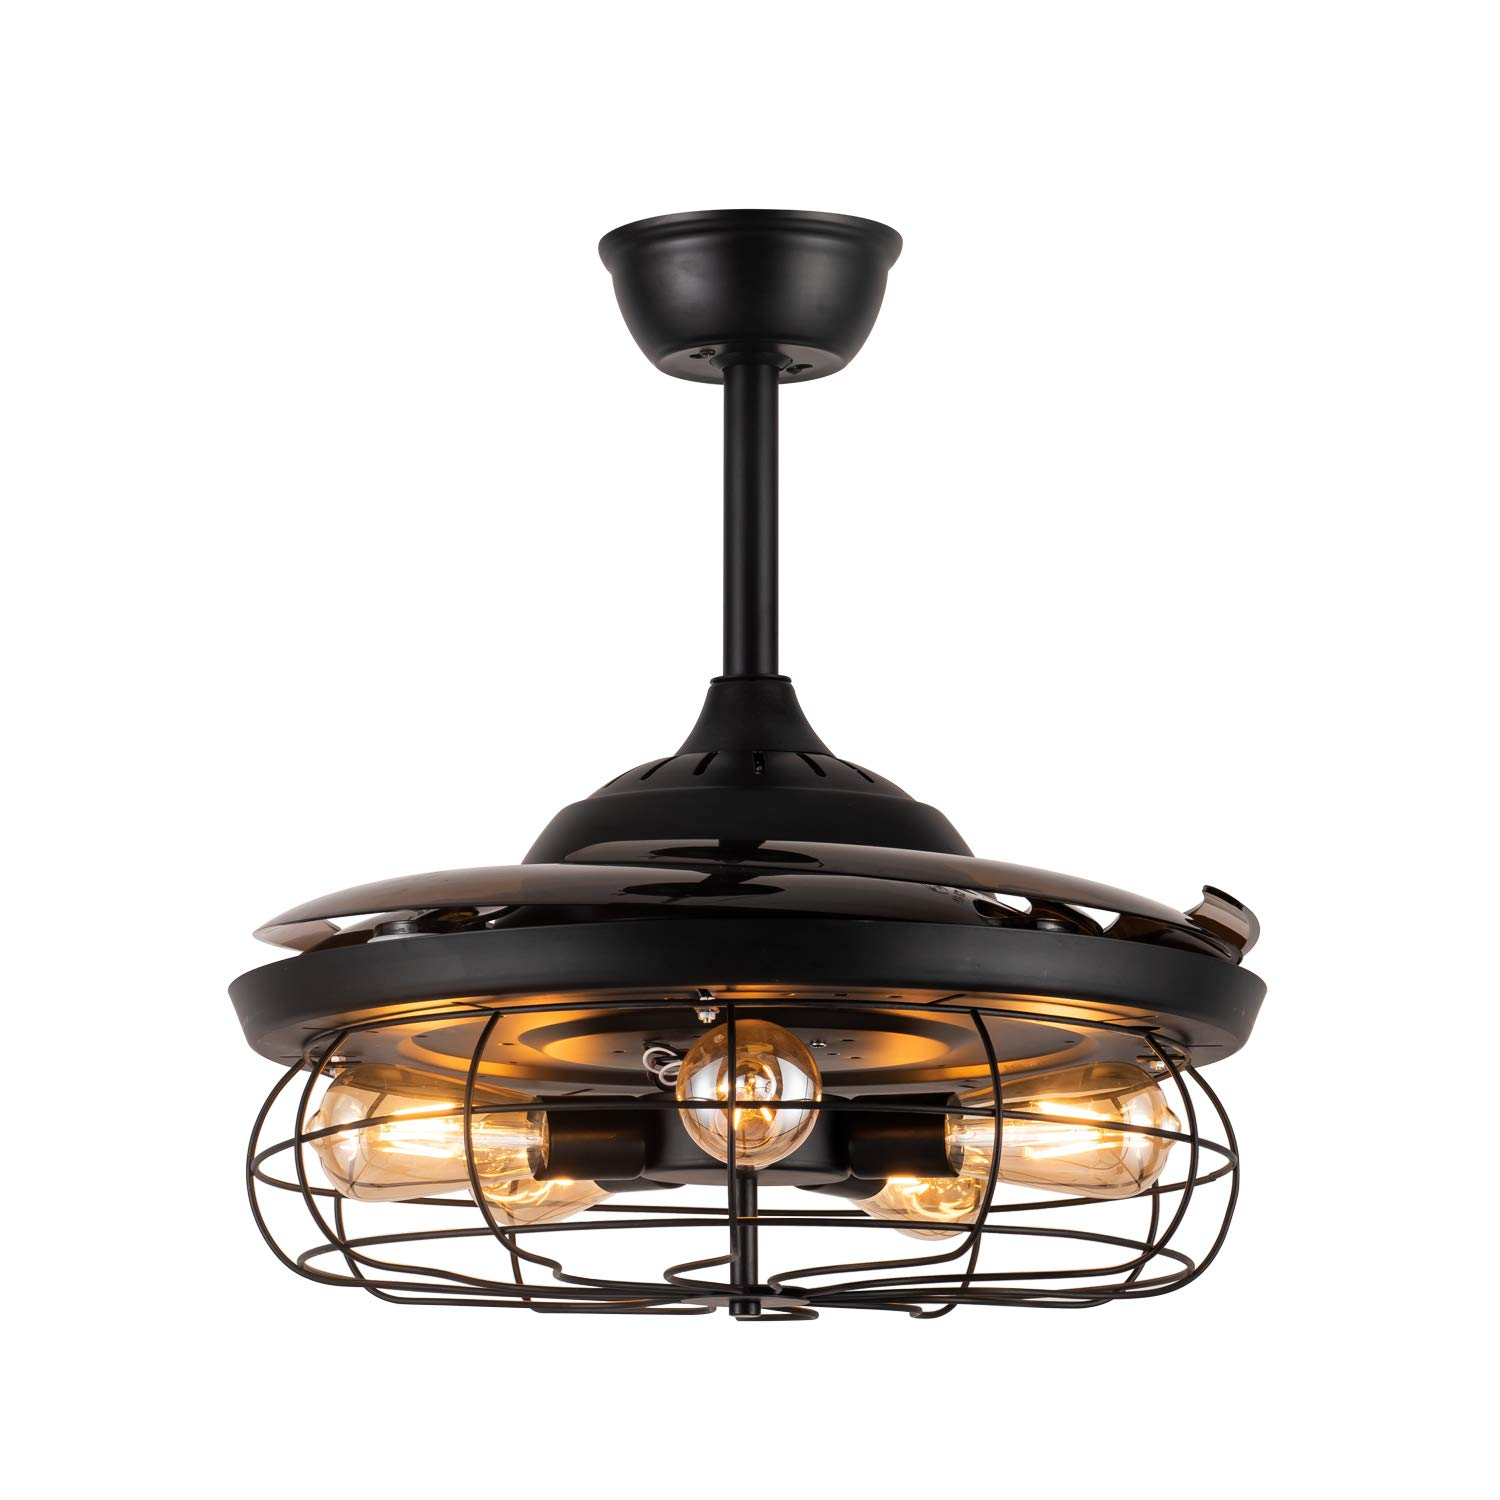 Moooni 48 Industrial Retro Ceiling Fans With Lights And Remote Retractable Vintage Caged Invisible Chandelier Fan Light Kit For Bedroom Kitchen Office Farmhouse Dining Room Black Lamps Light Fixtures Tools